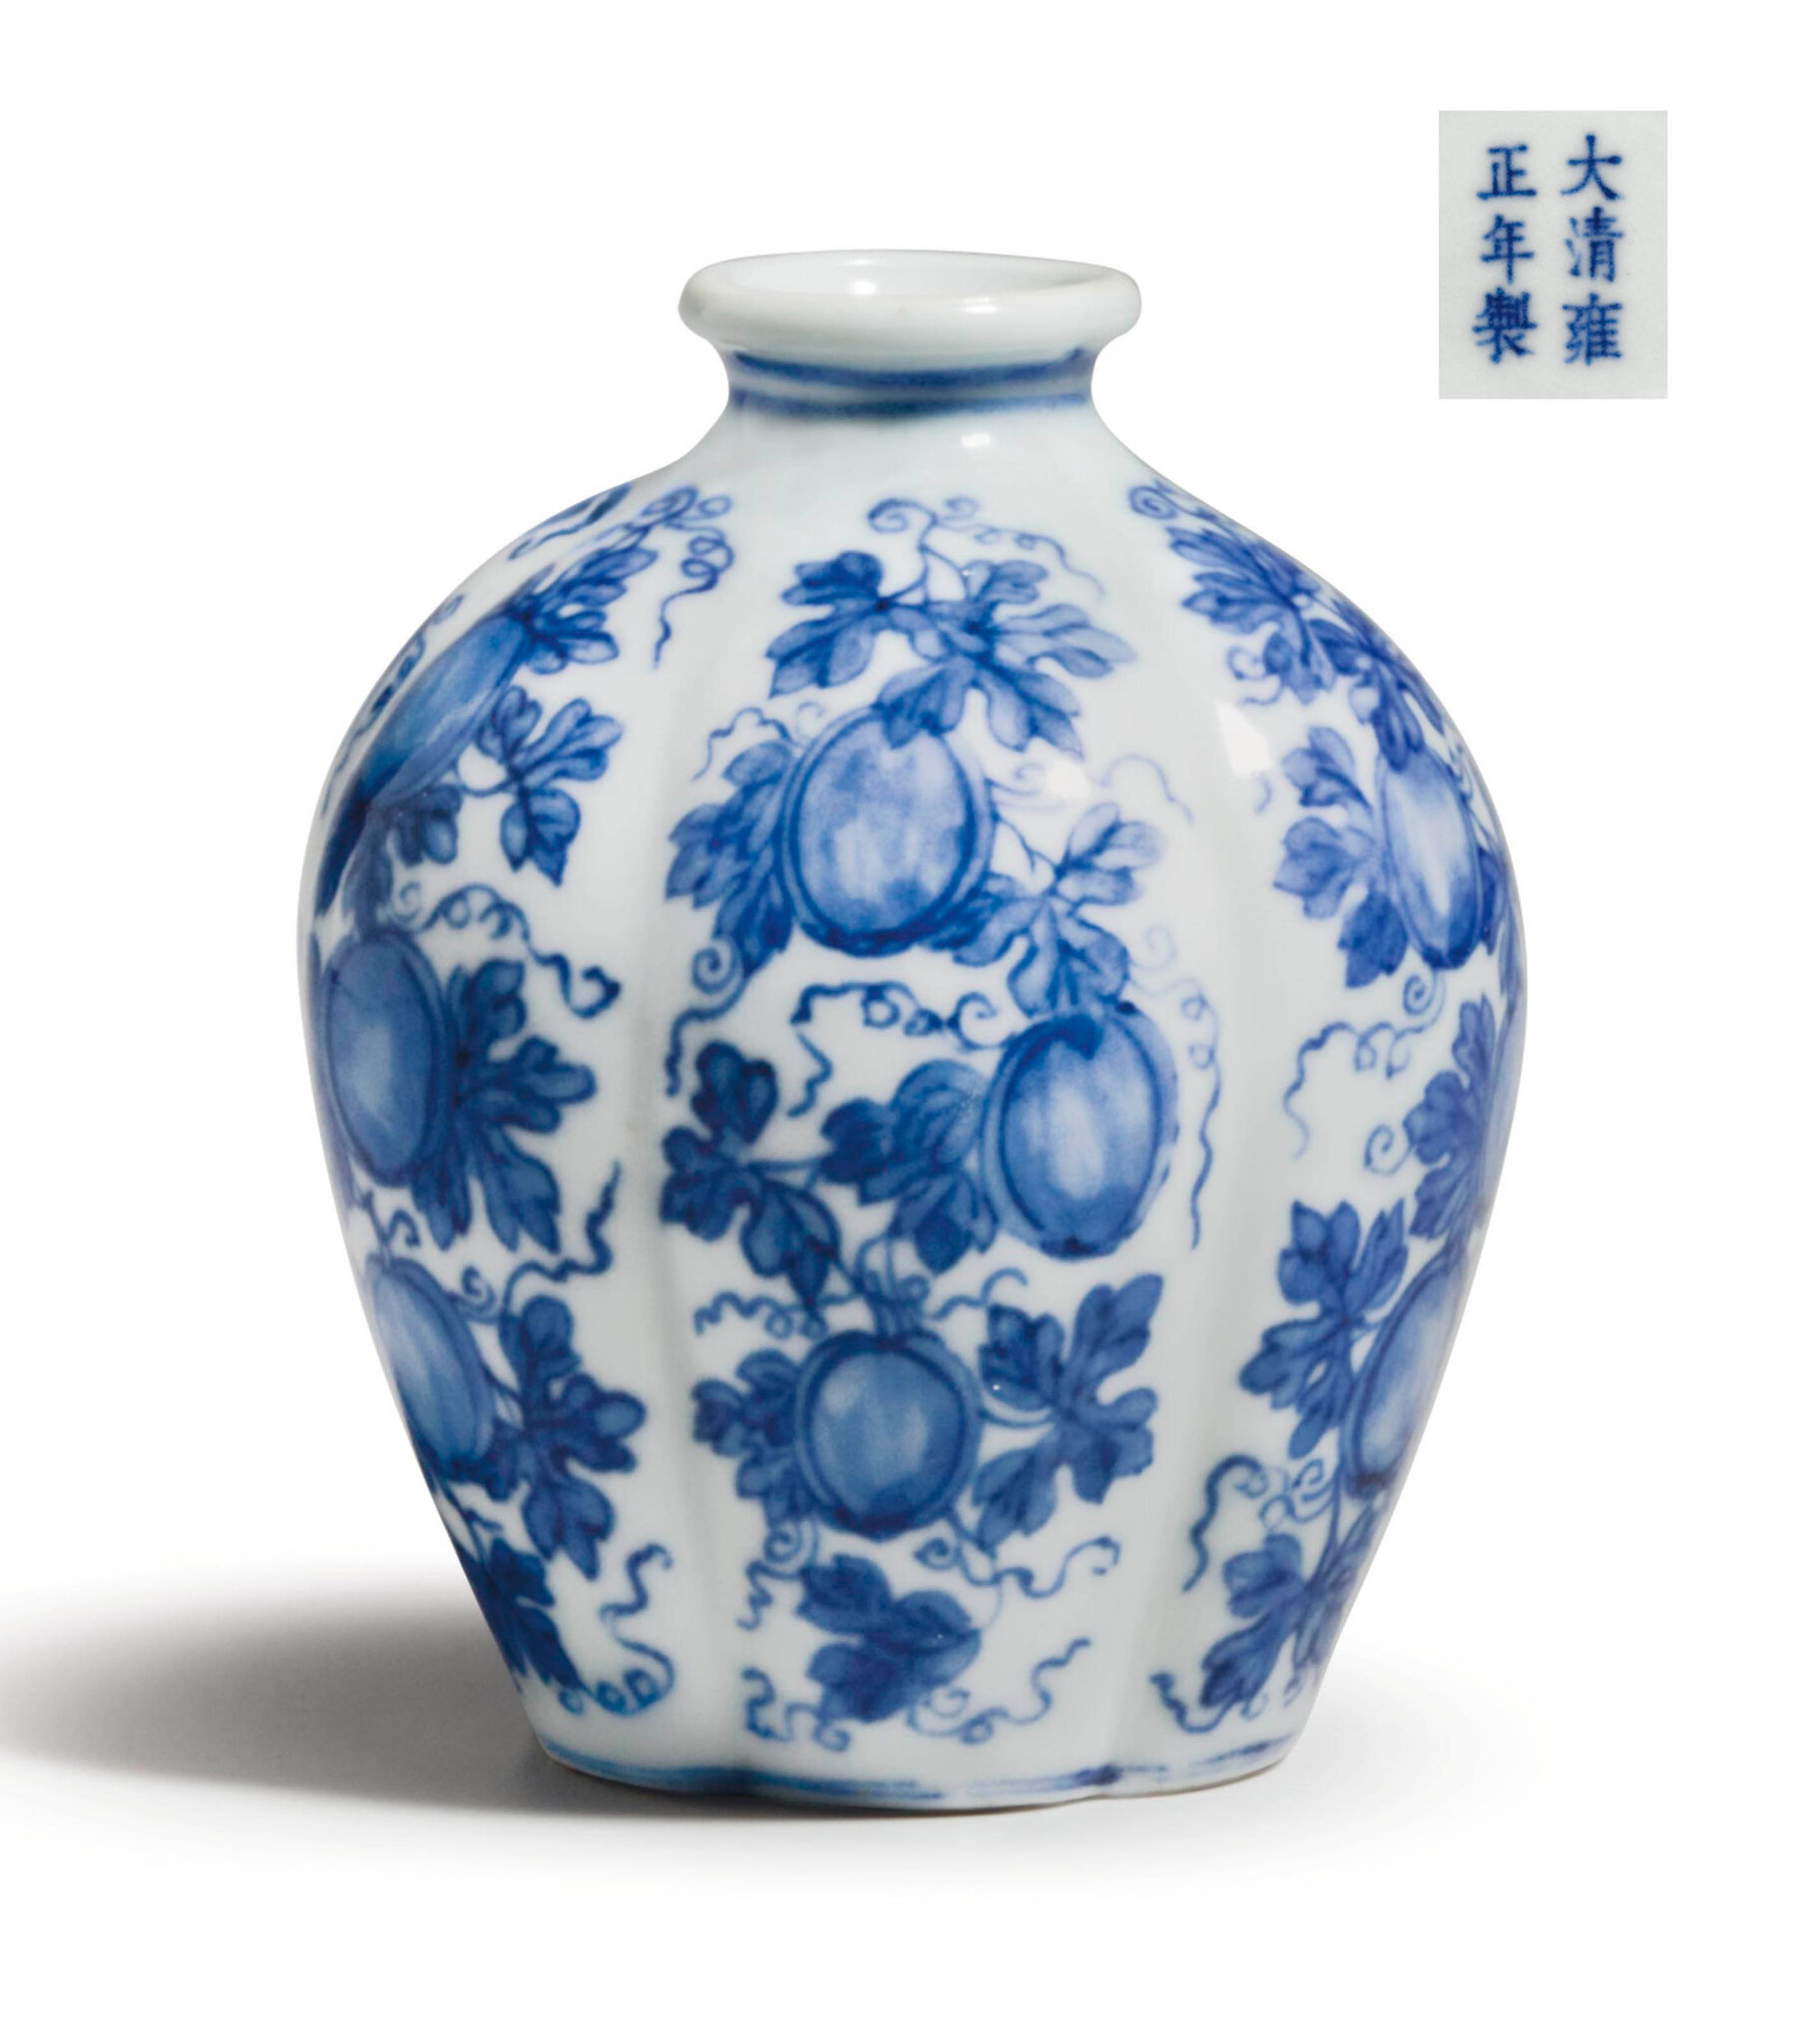 A Small Blue and White 'Melon' Jar, Yongzheng six-character mark in underglaze blue and of the period (1723-1736)